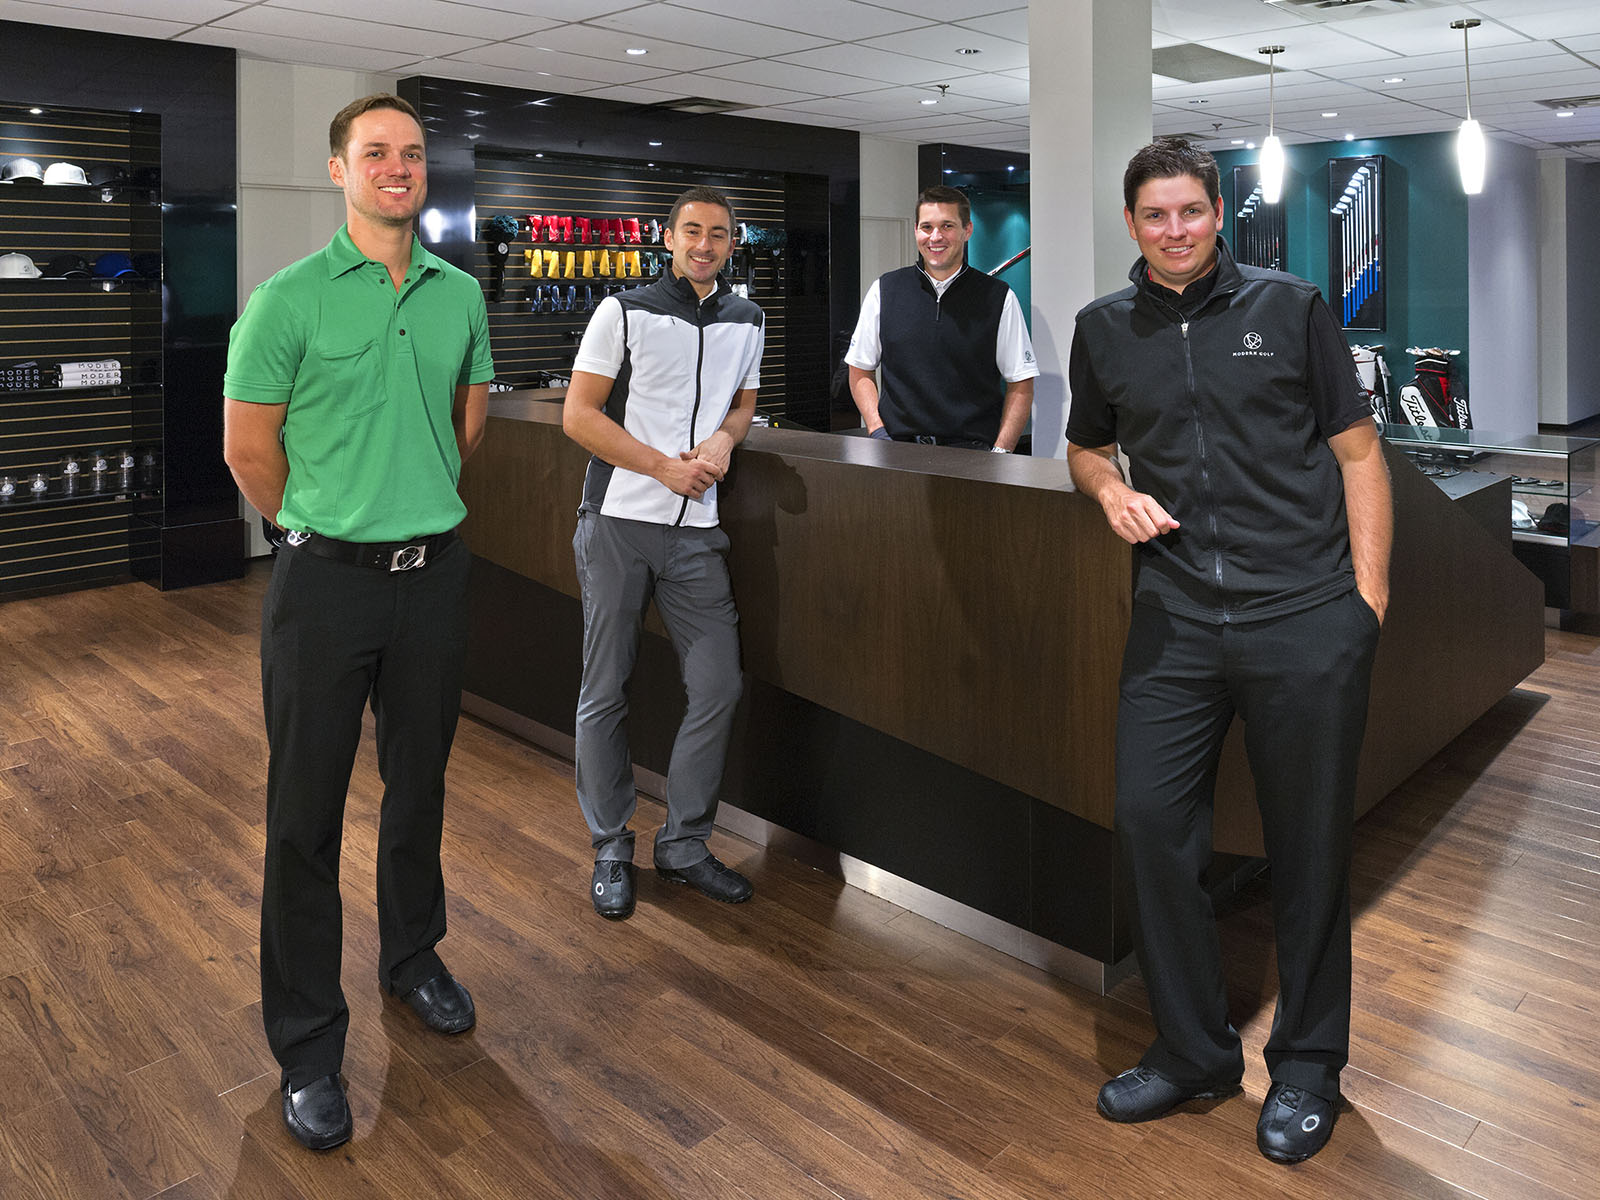 Four members of sales staff in golf pro shop